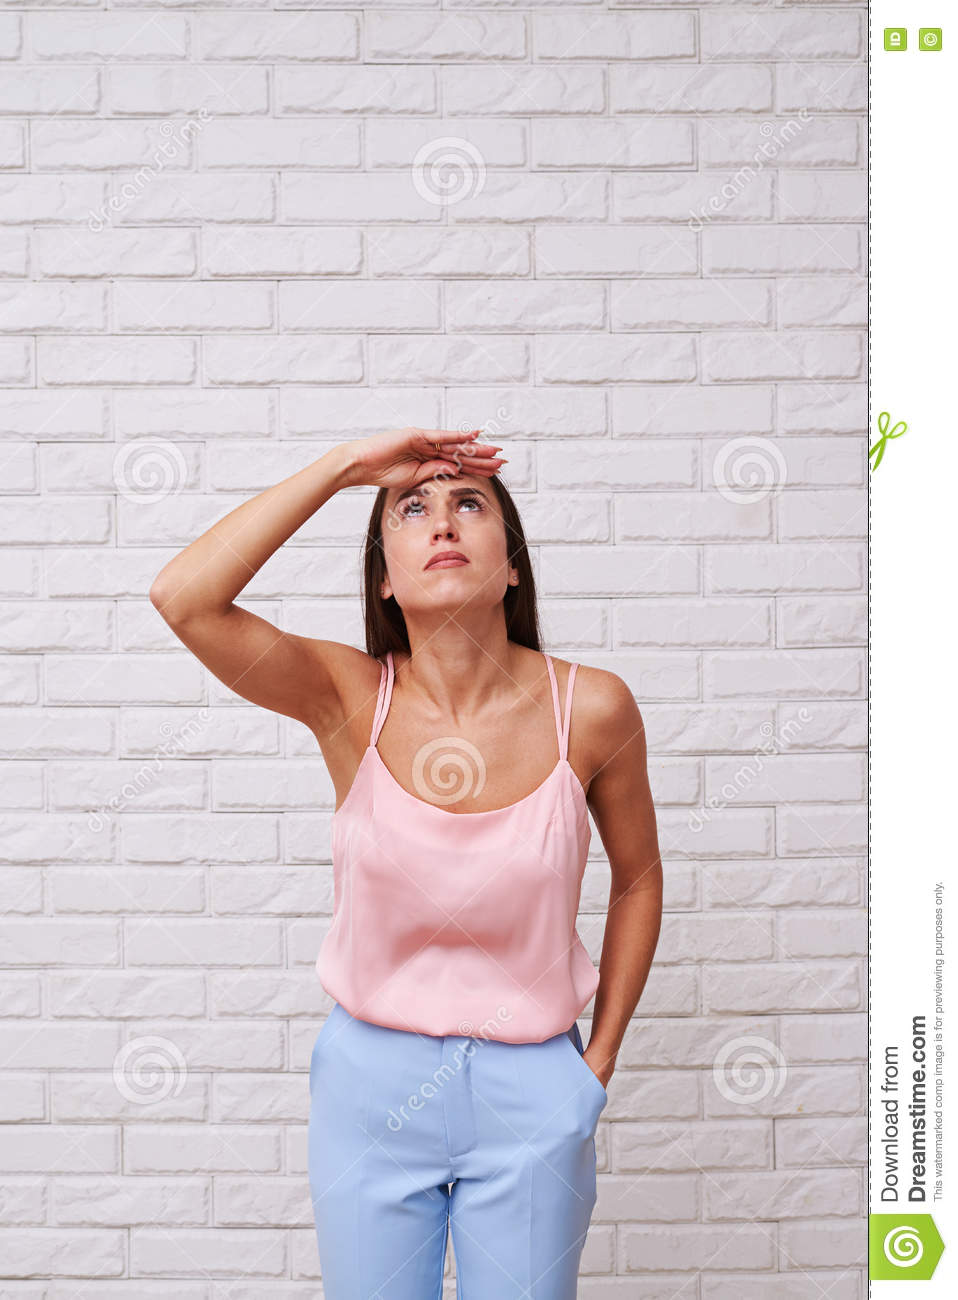 A woman looking up, having an eager eyes